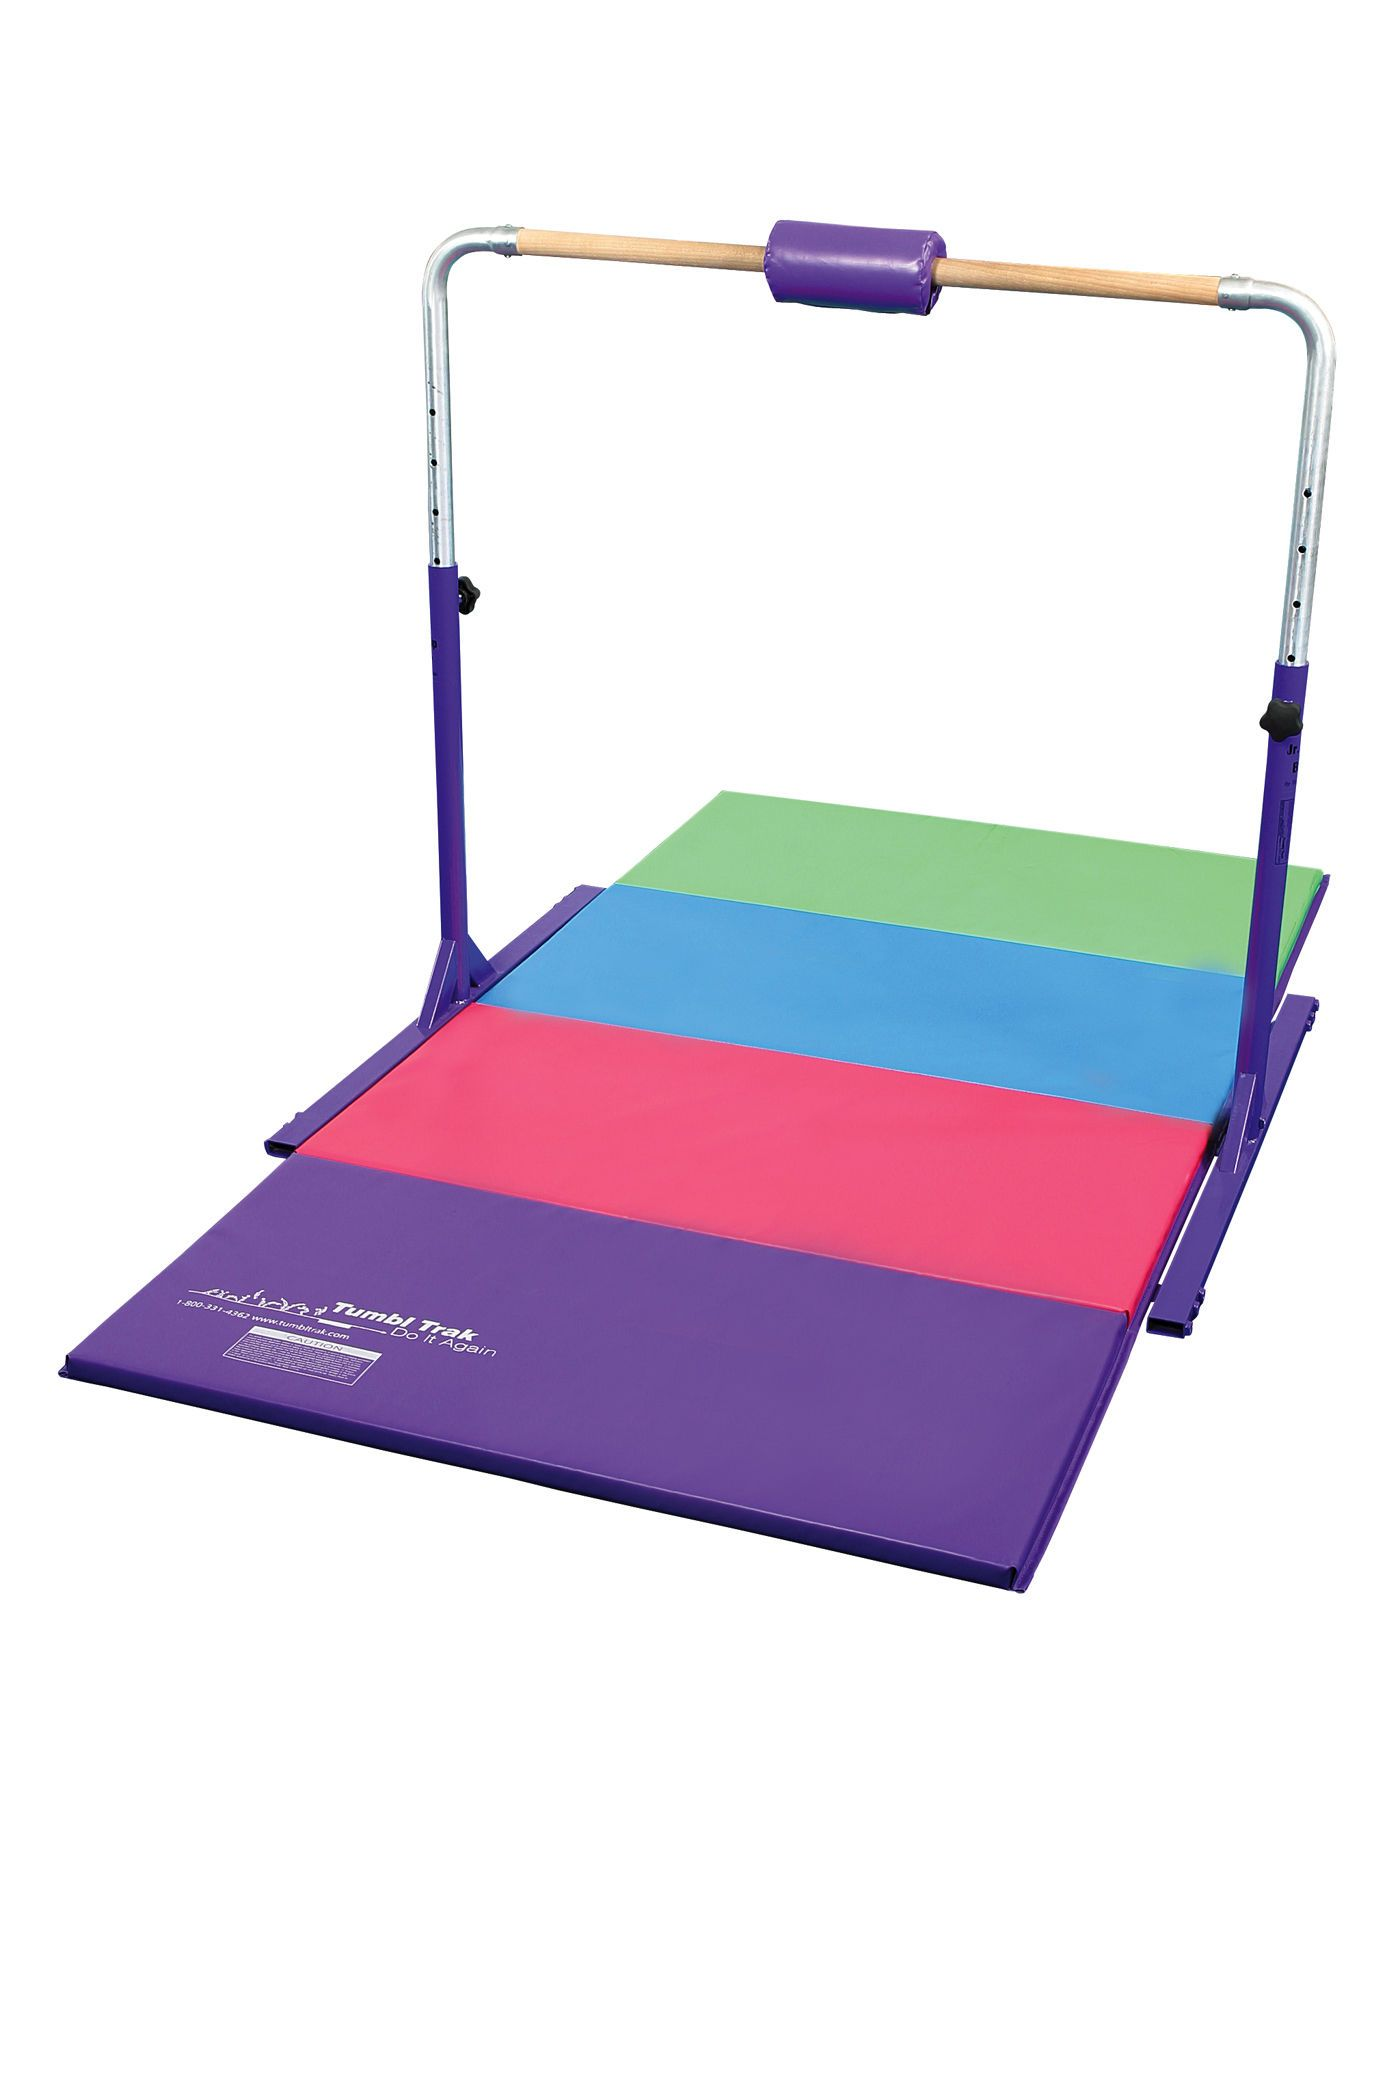 mats tumbling aerobics colours folding used gym pilates gymnastic detail mat different gymnastics yoga product